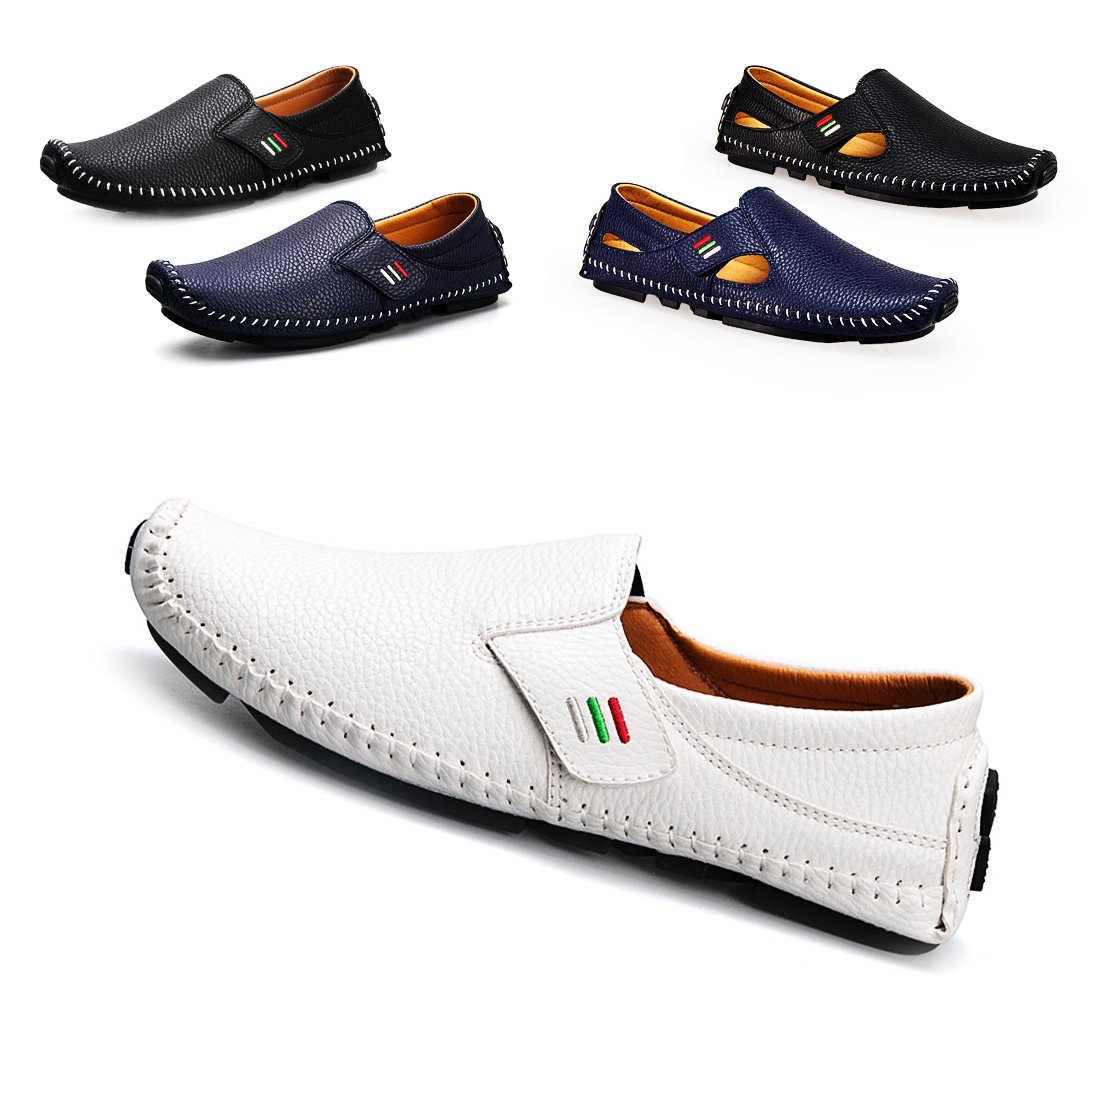 Driving Shoes Men's Penny Loafers Casual Leather Stitched Loafer Shoes(White 44)